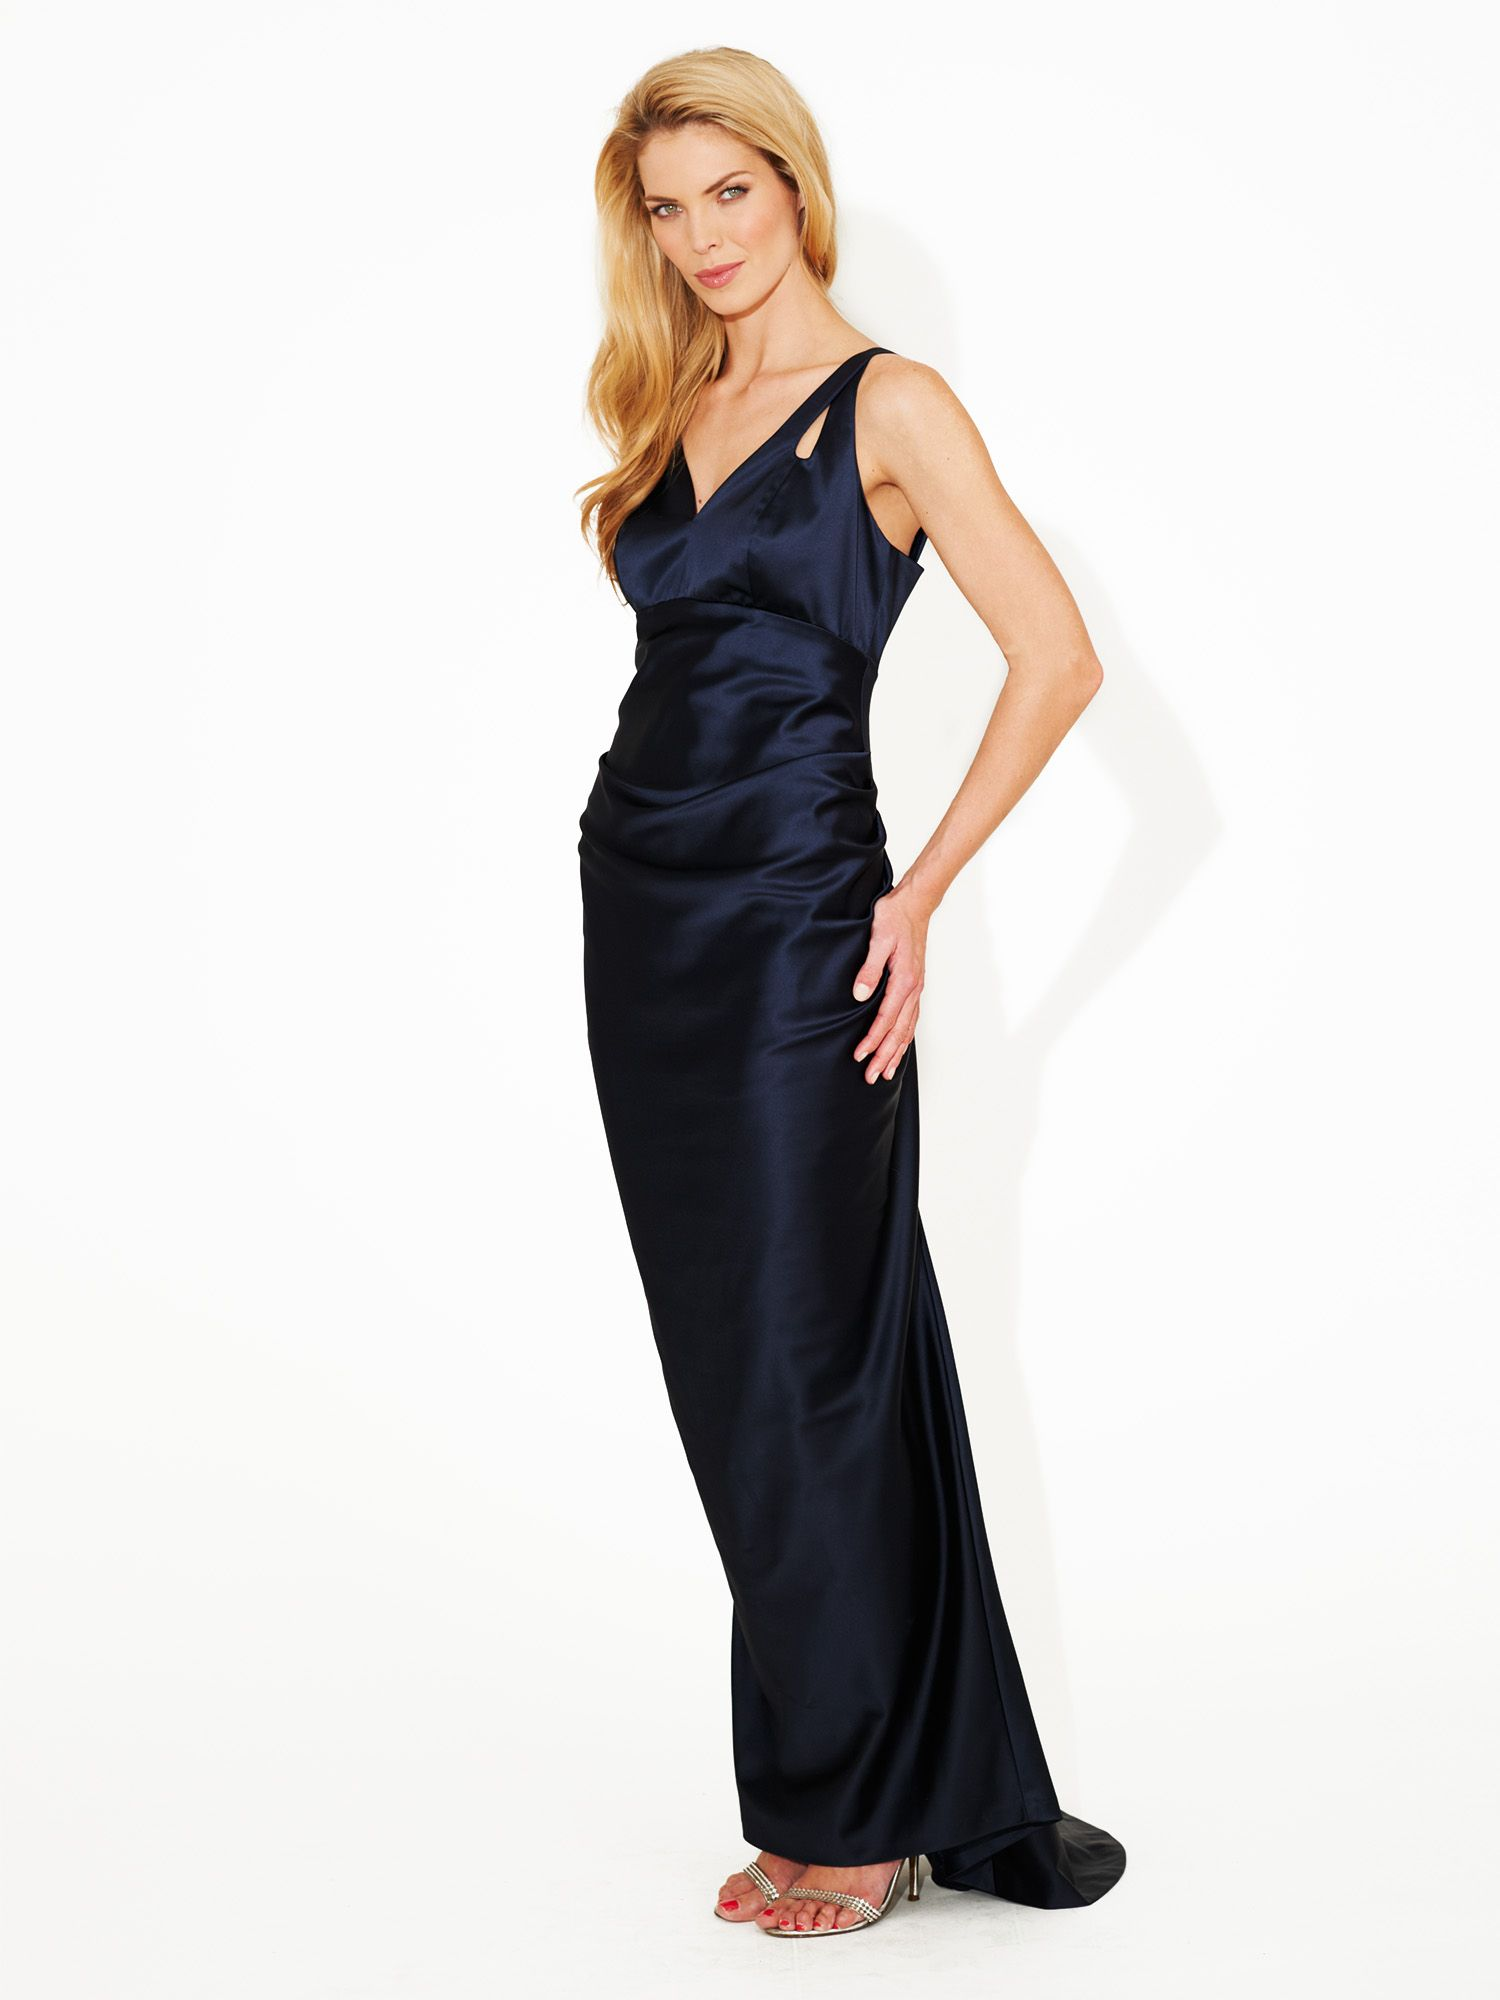 Belle de nuit dress